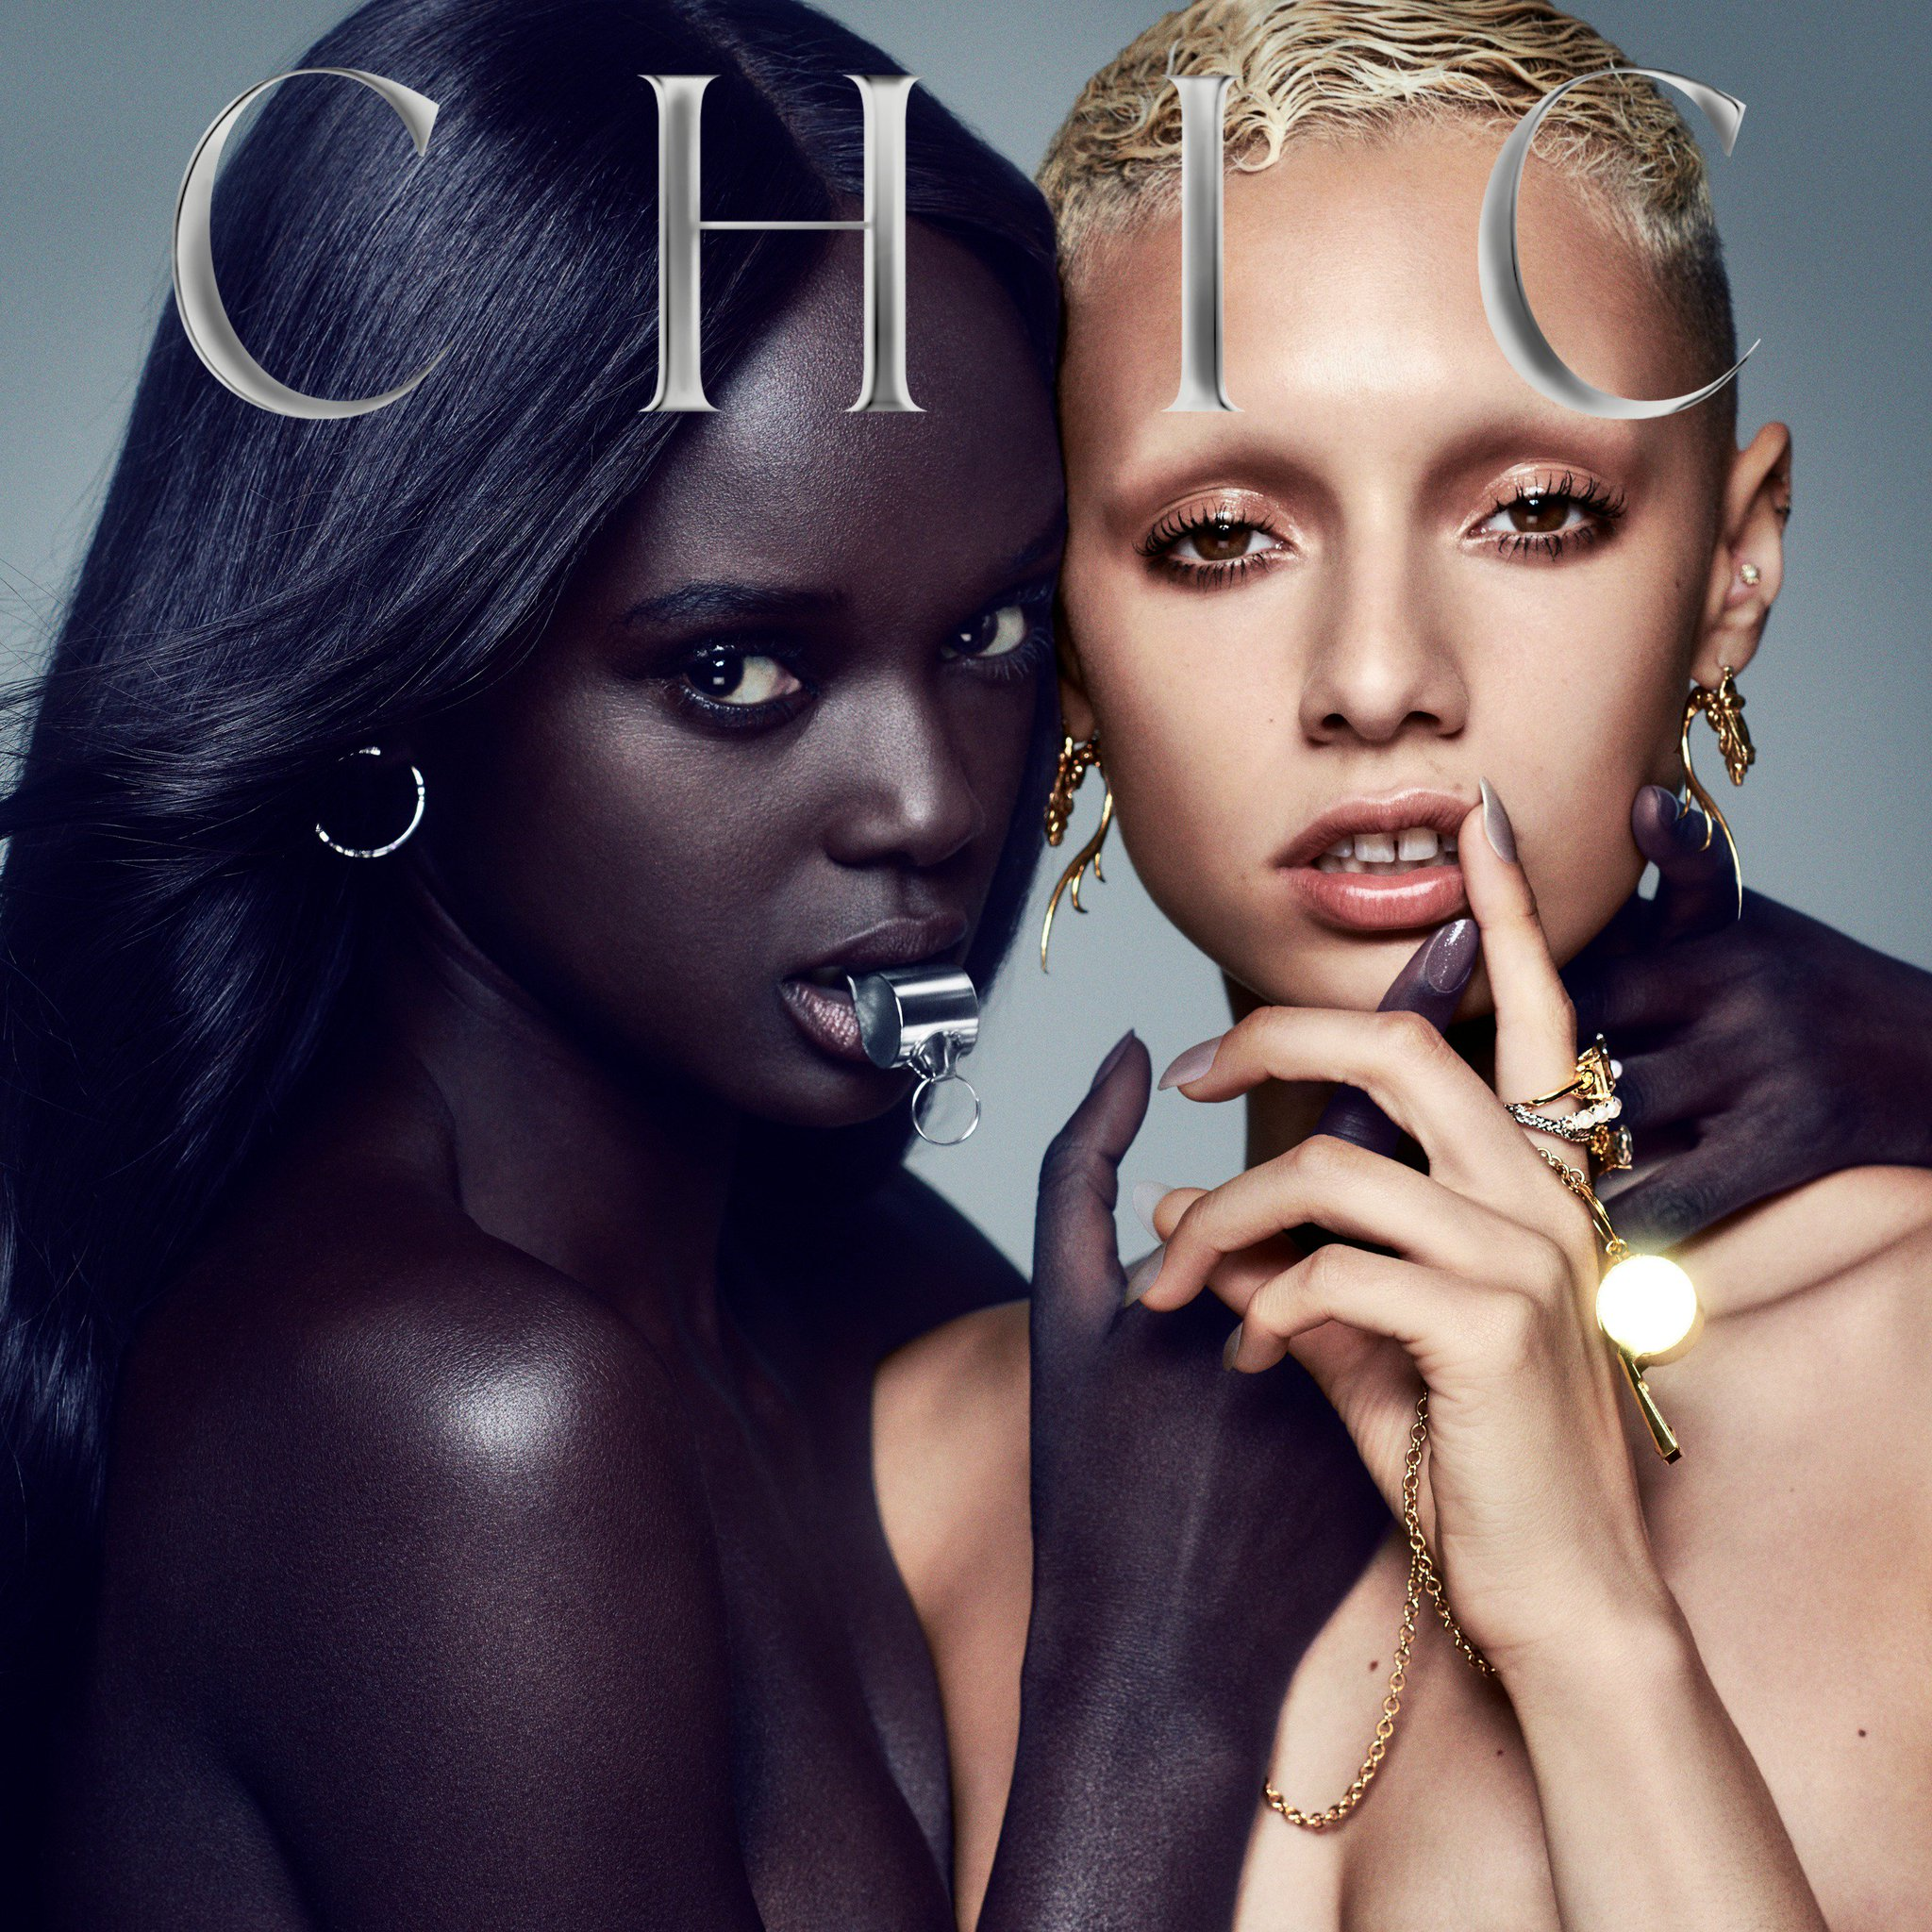 Stream Chic's first new album in 26 years https://t.co/AGJr1bldsh https://t.co/WlCJFaNbXs